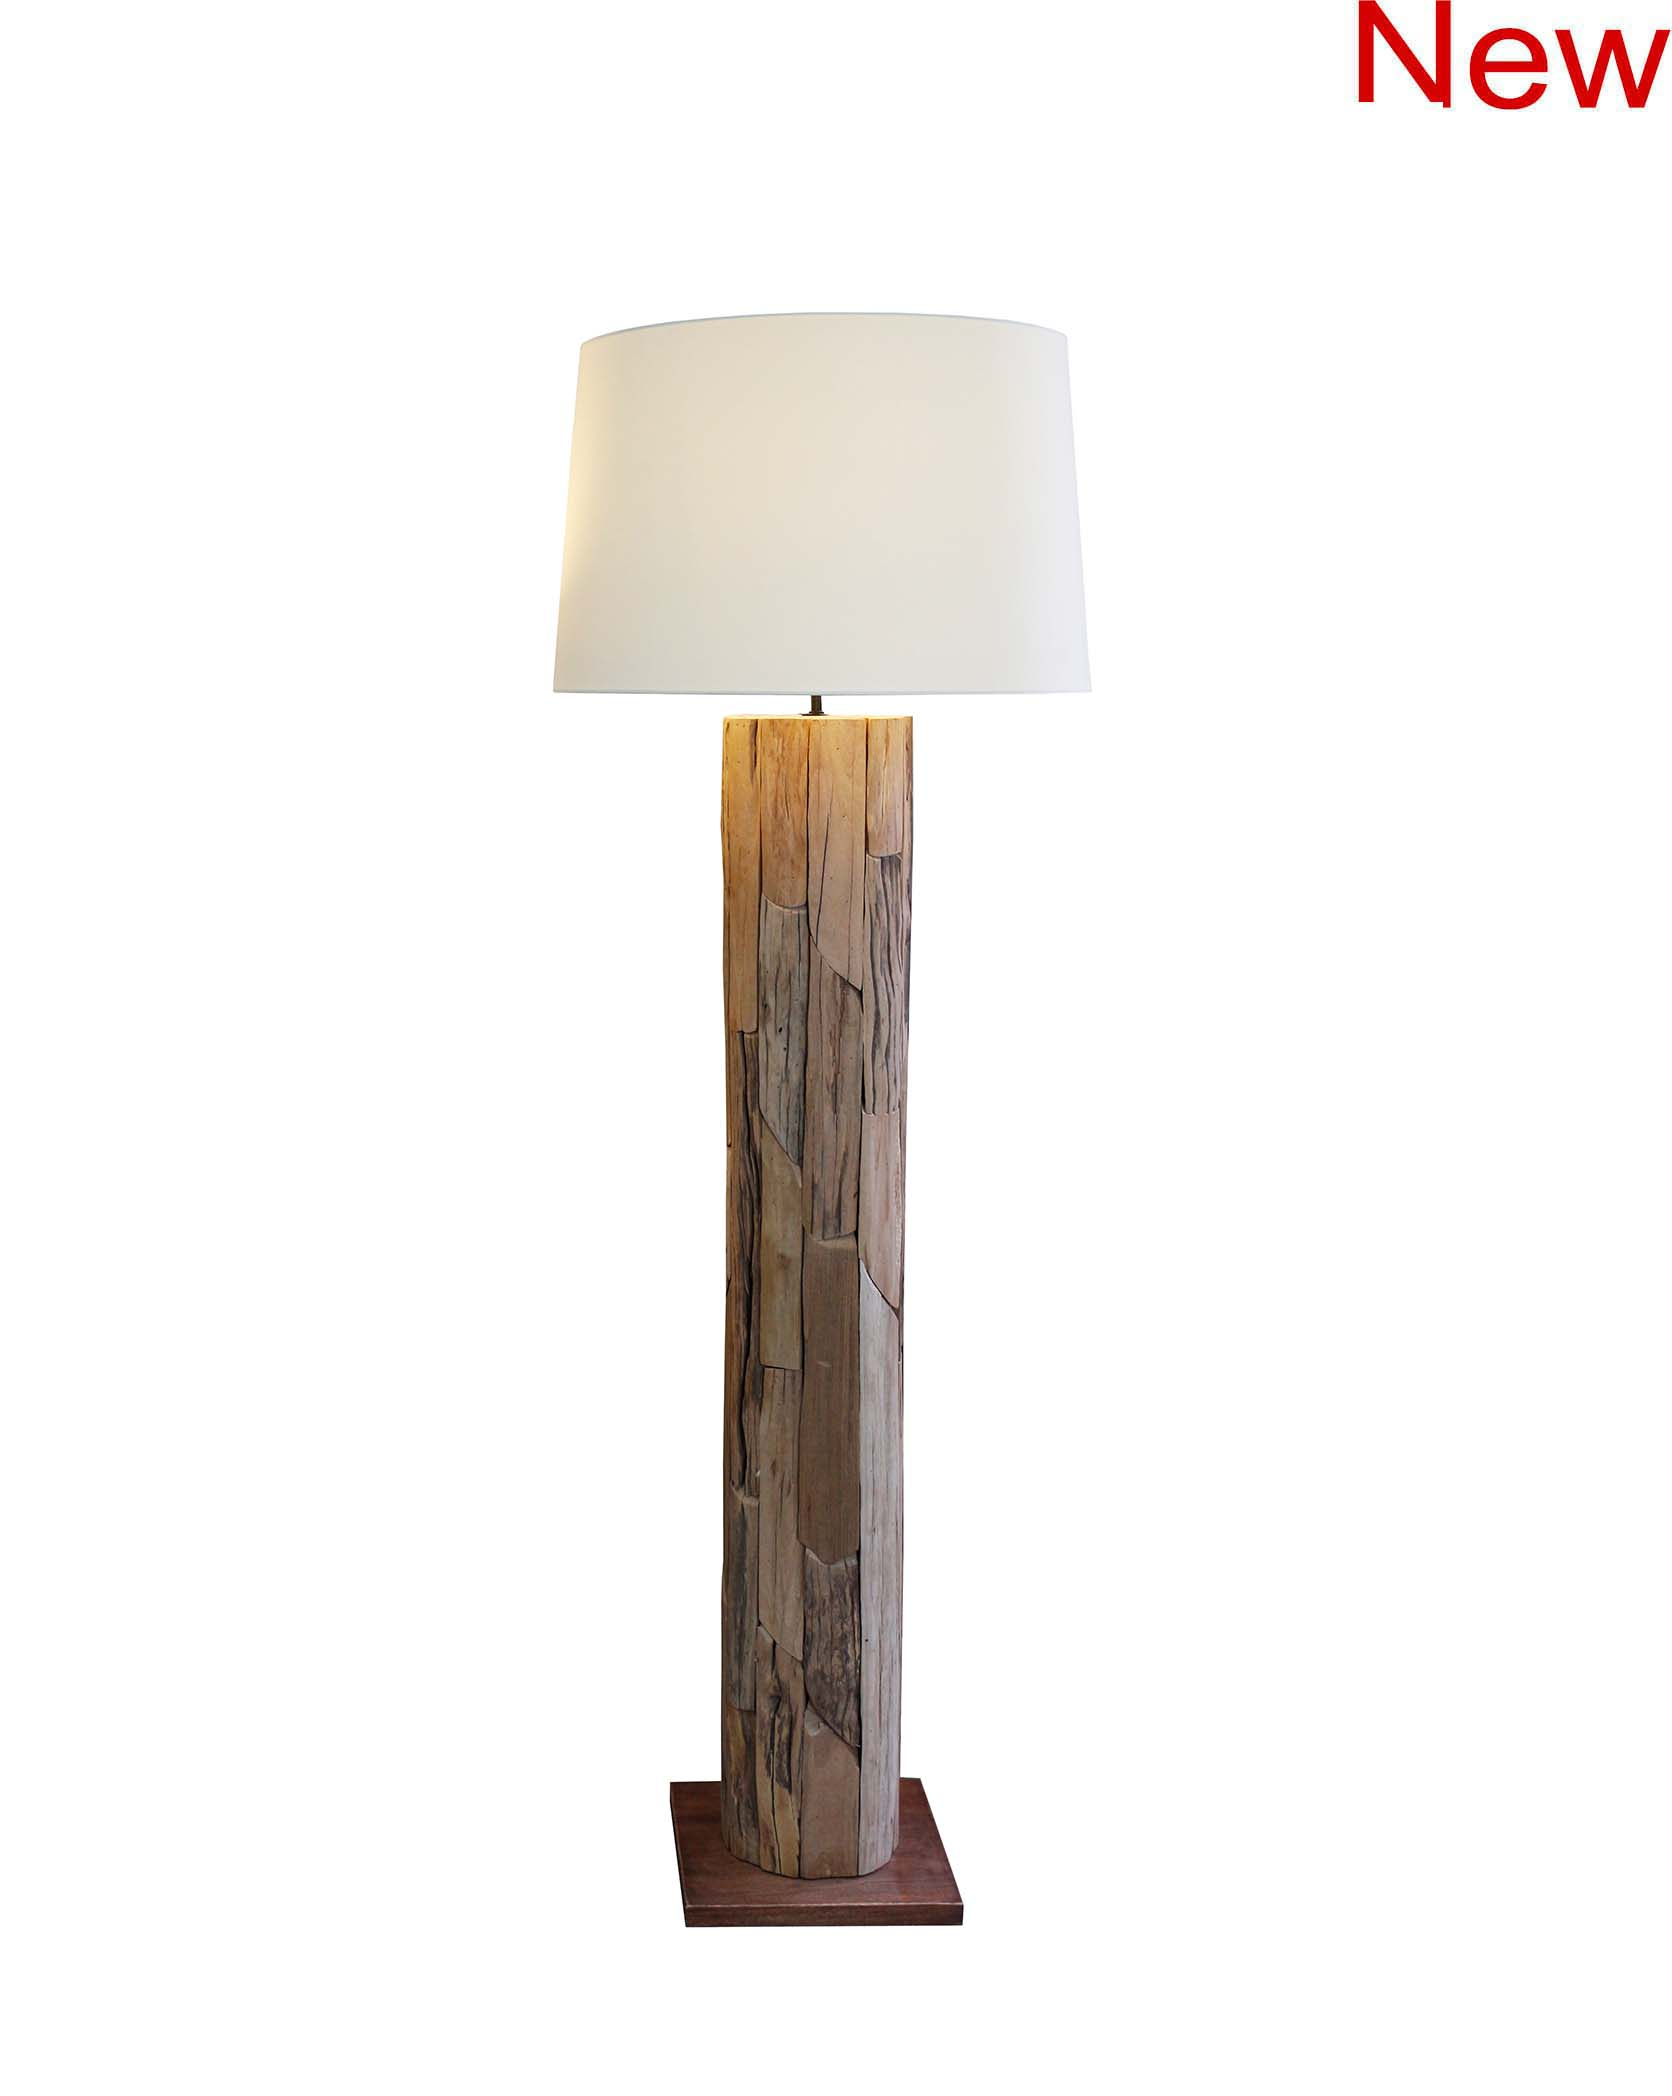 Wooden Patch floor lamp product photo #2